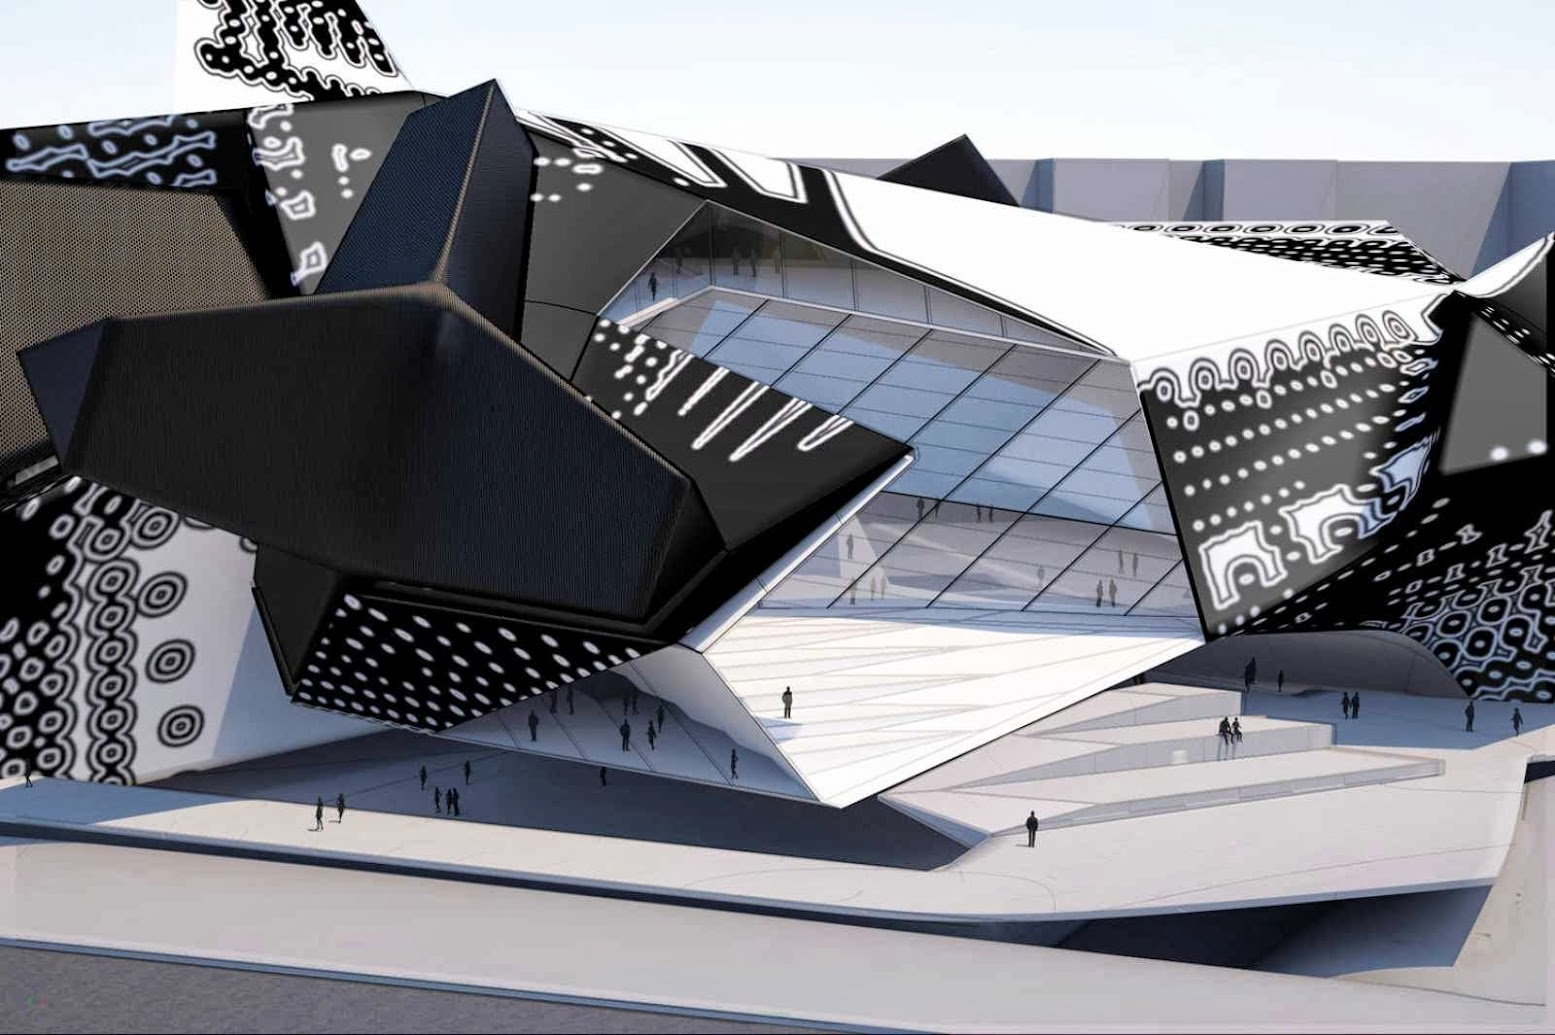 Mosca, Russia: [NATIONAL CENTER FOR CONTEMPORARY ARTS BY TOM WISCOMBE DESIGN]